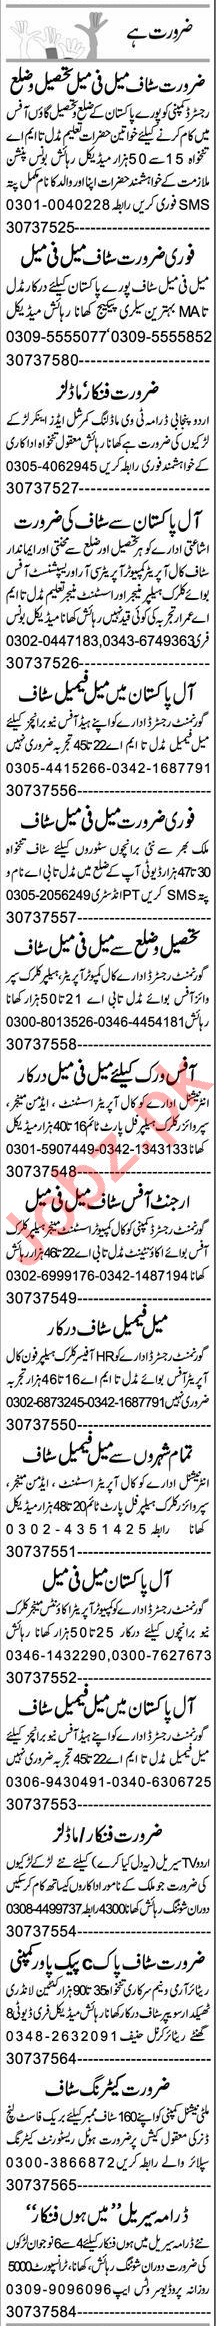 HR Officer & Assistant Manager Jobs 2020 in Lahore